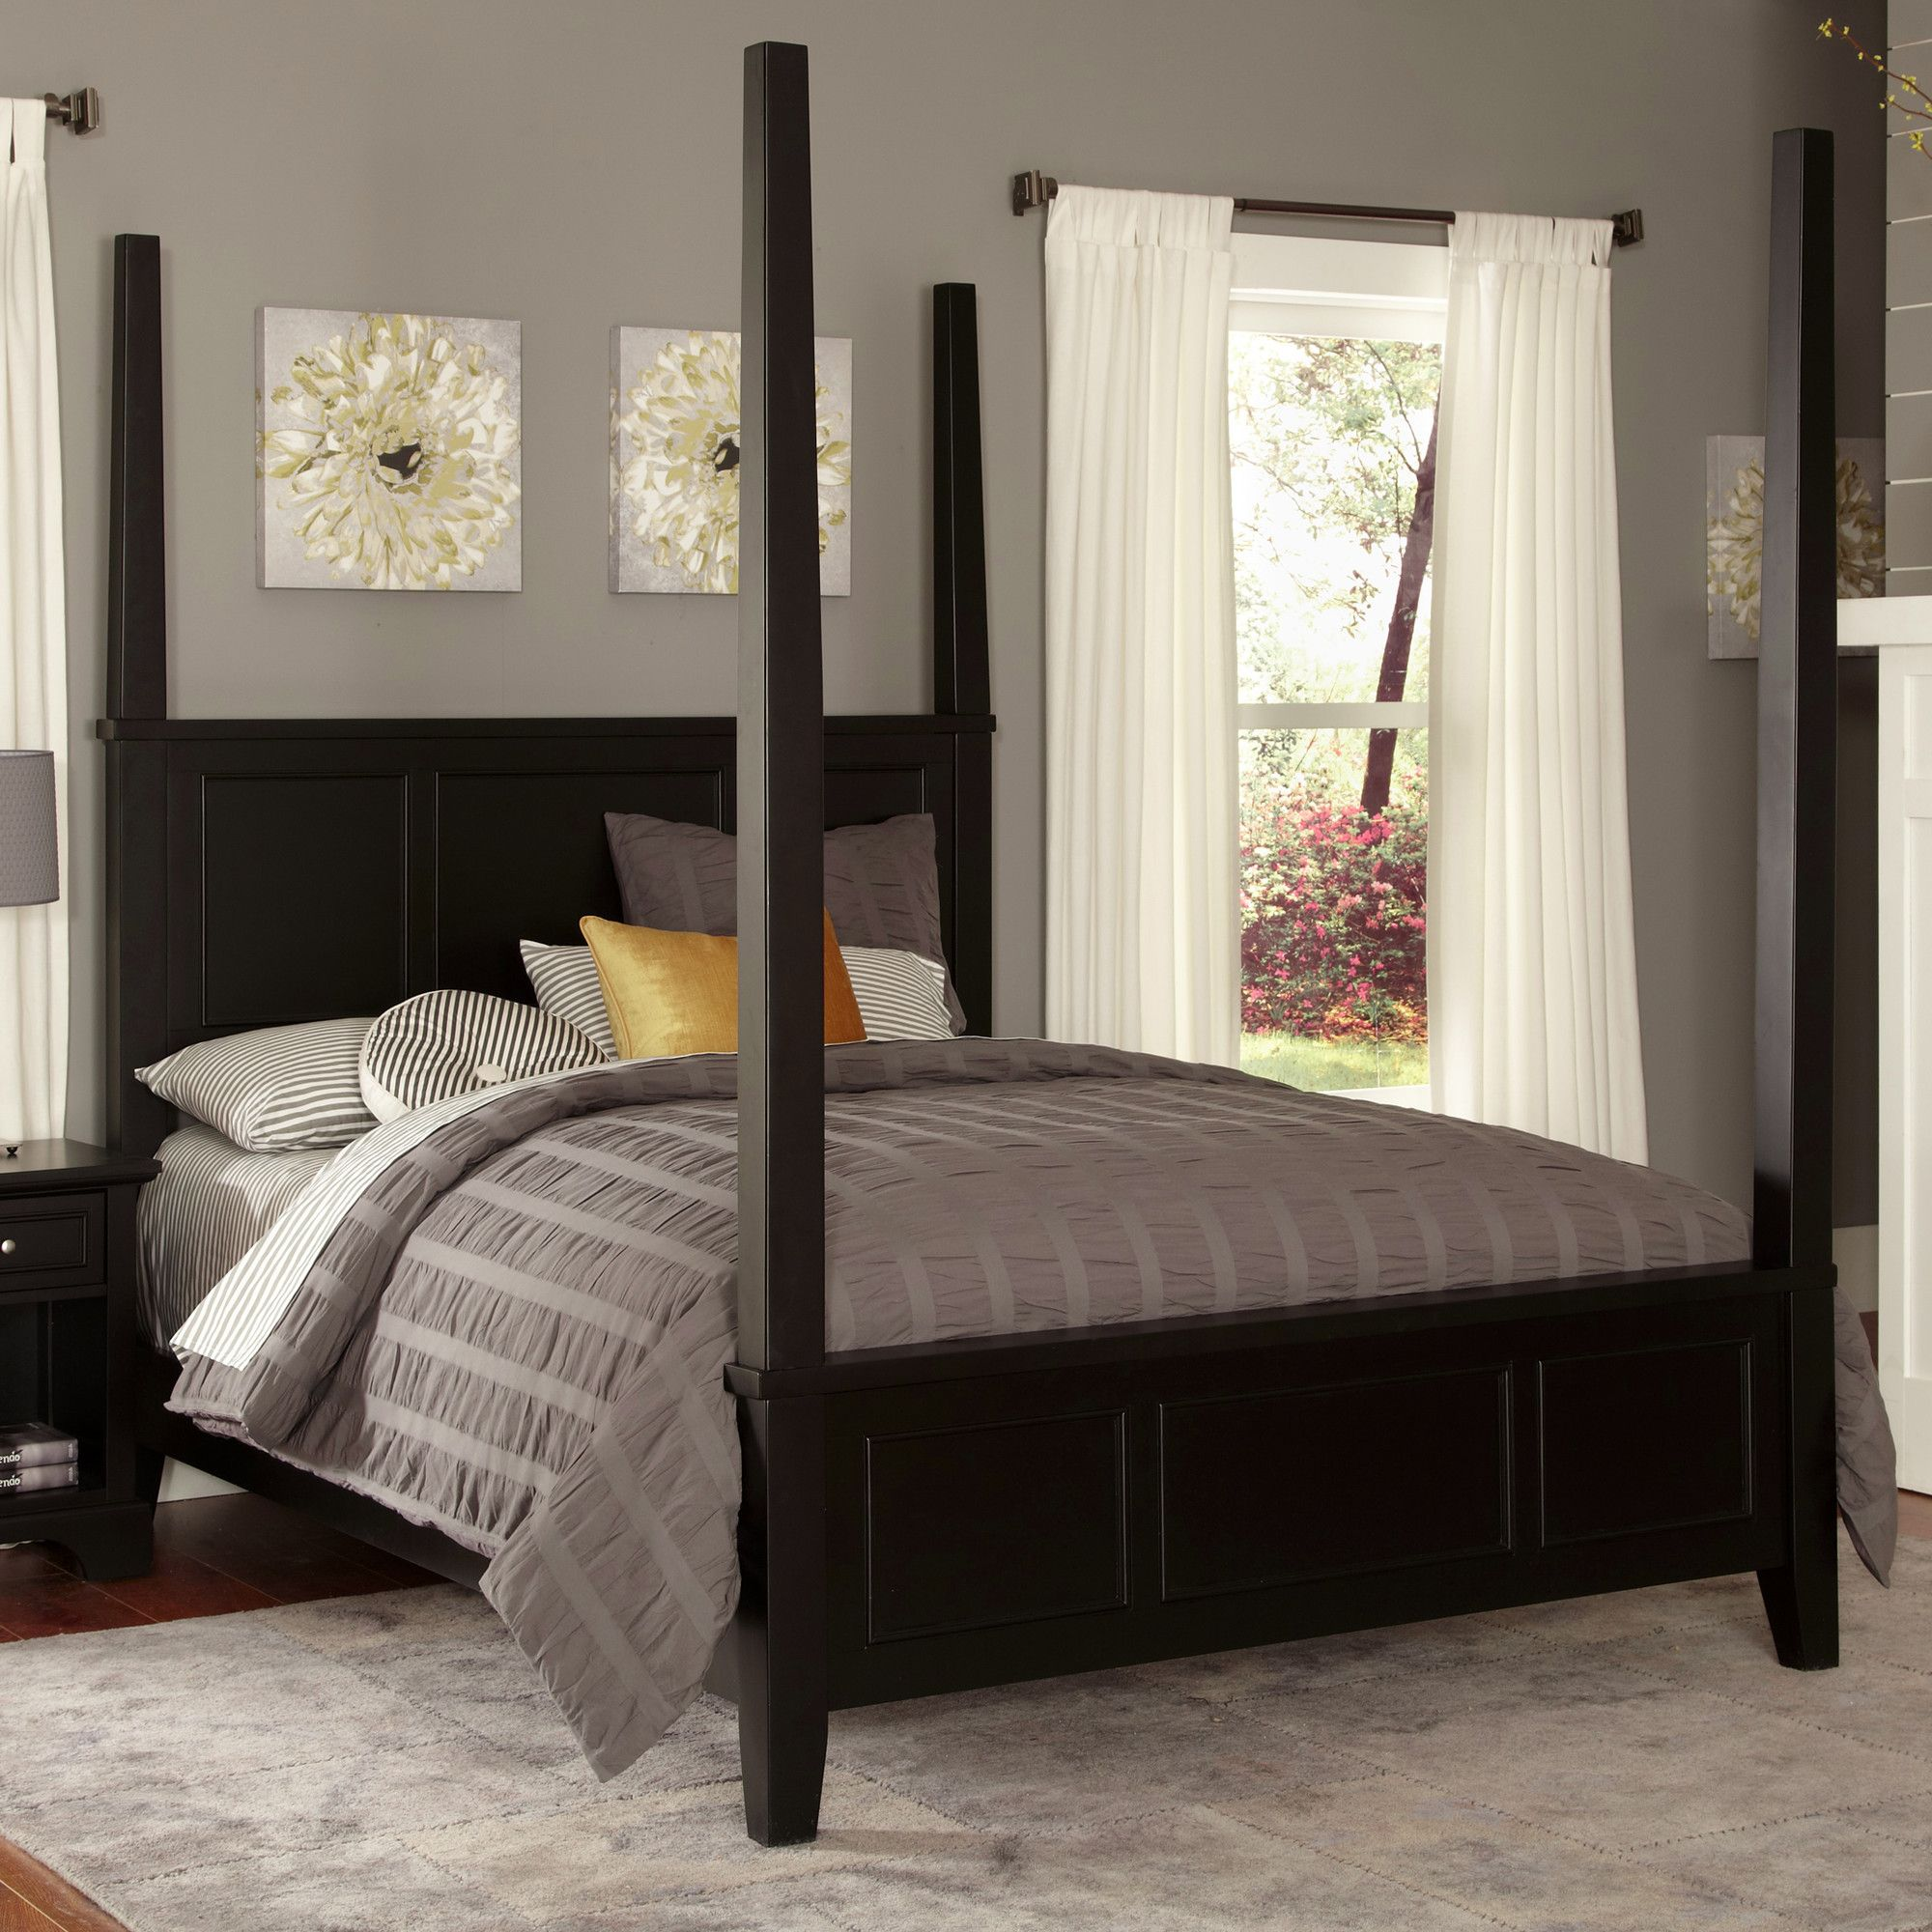 Bryson Four Poster Bed